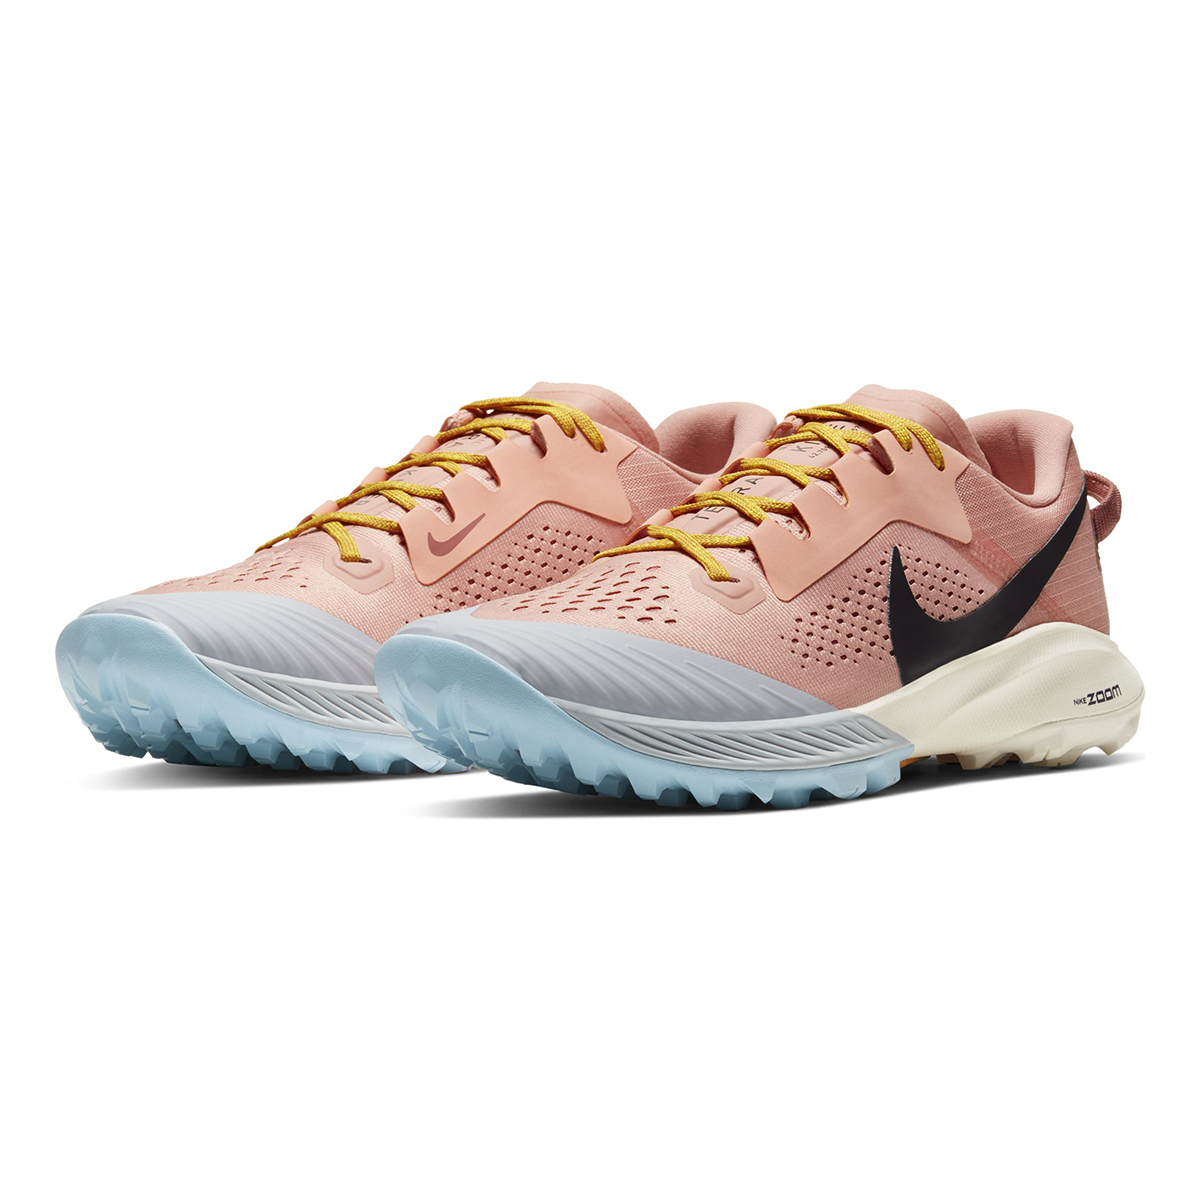 Women's Nike Air Zoom Terra Kiger 6 Trail Running Shoe - Color: Pink Quartz/Canyon Pink/Sky Grey/Burgundy Ash (Regular Width) - Size: 5, Pink Quartz/Canyon Pink/Sky Grey/Burgundy Ash, large, image 4